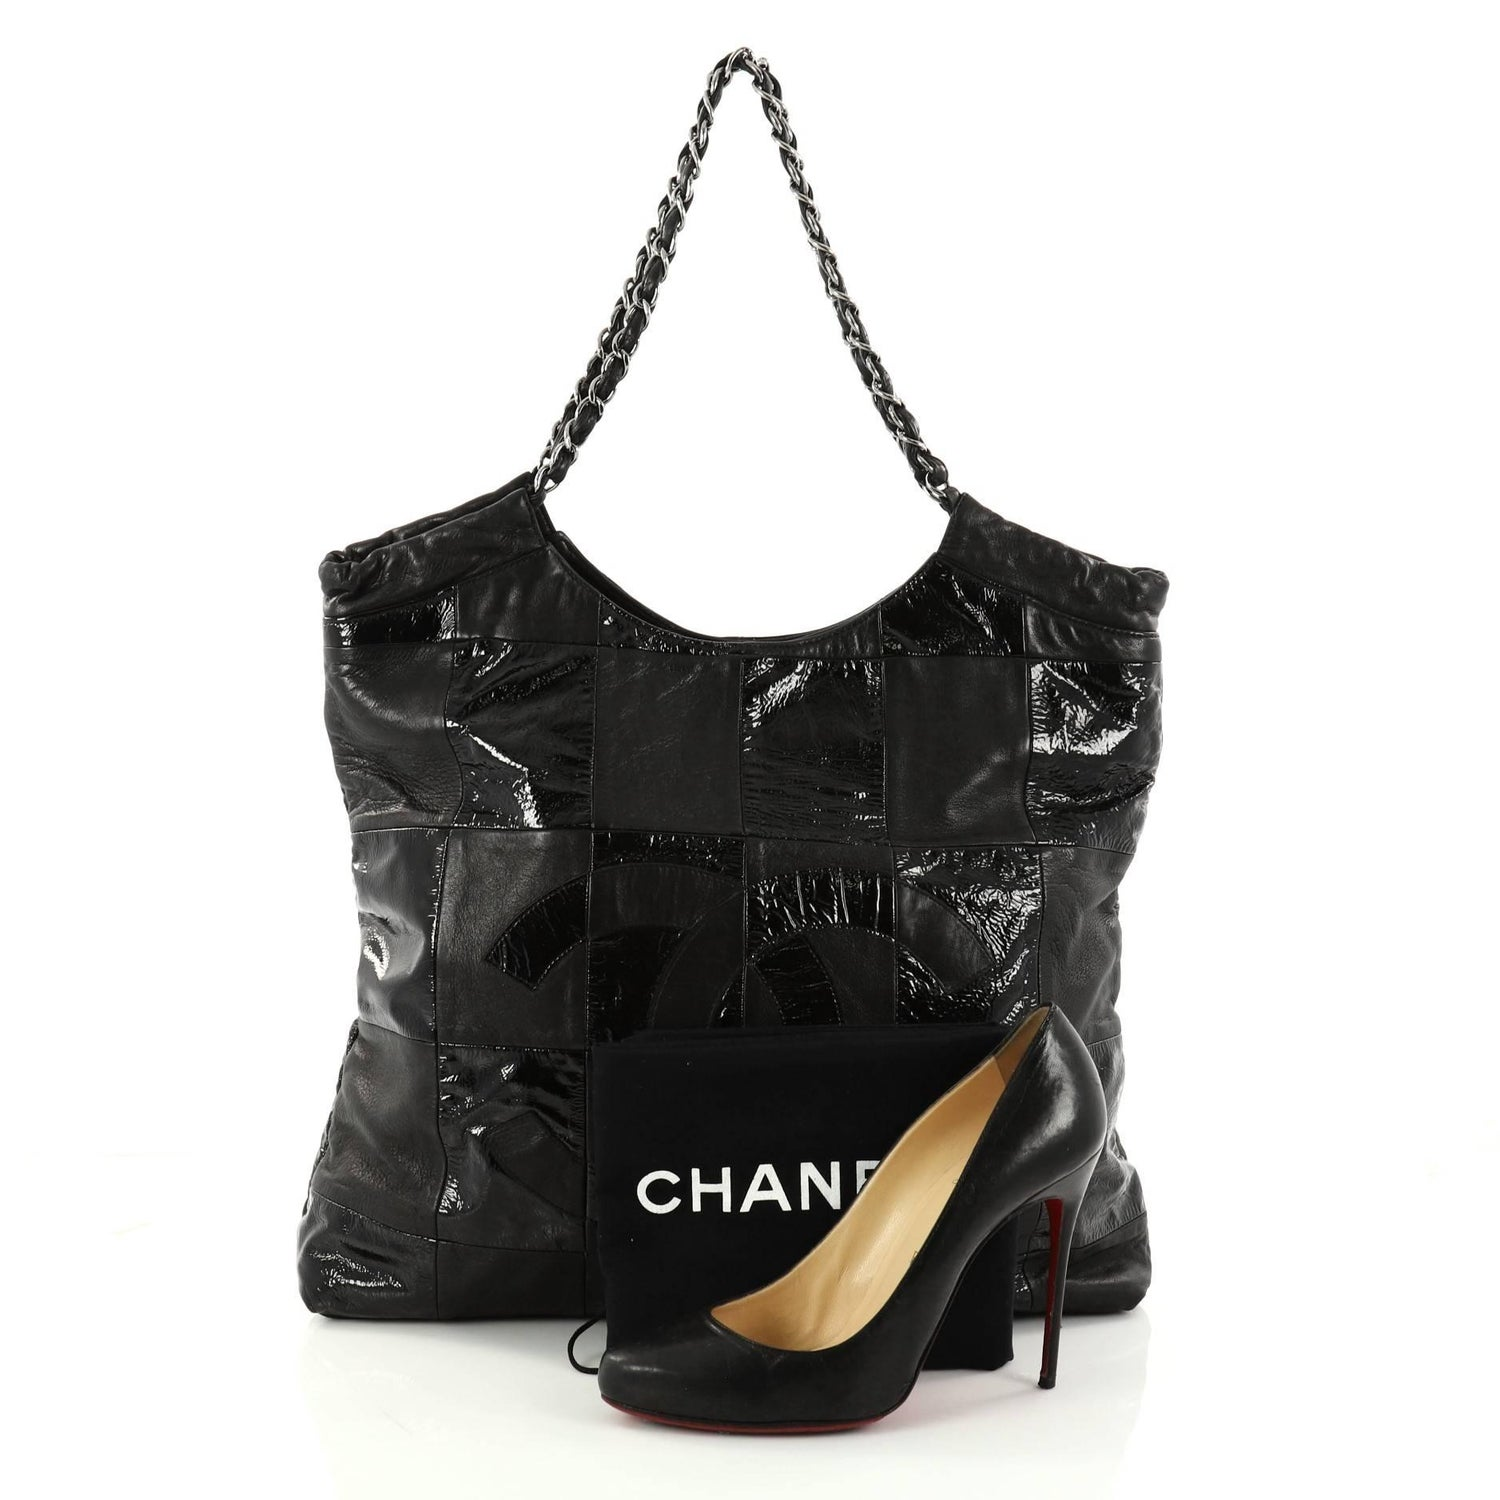 7278d031c096 Chanel Brooklyn Leather Patchwork Medium Tote at 1stdibs